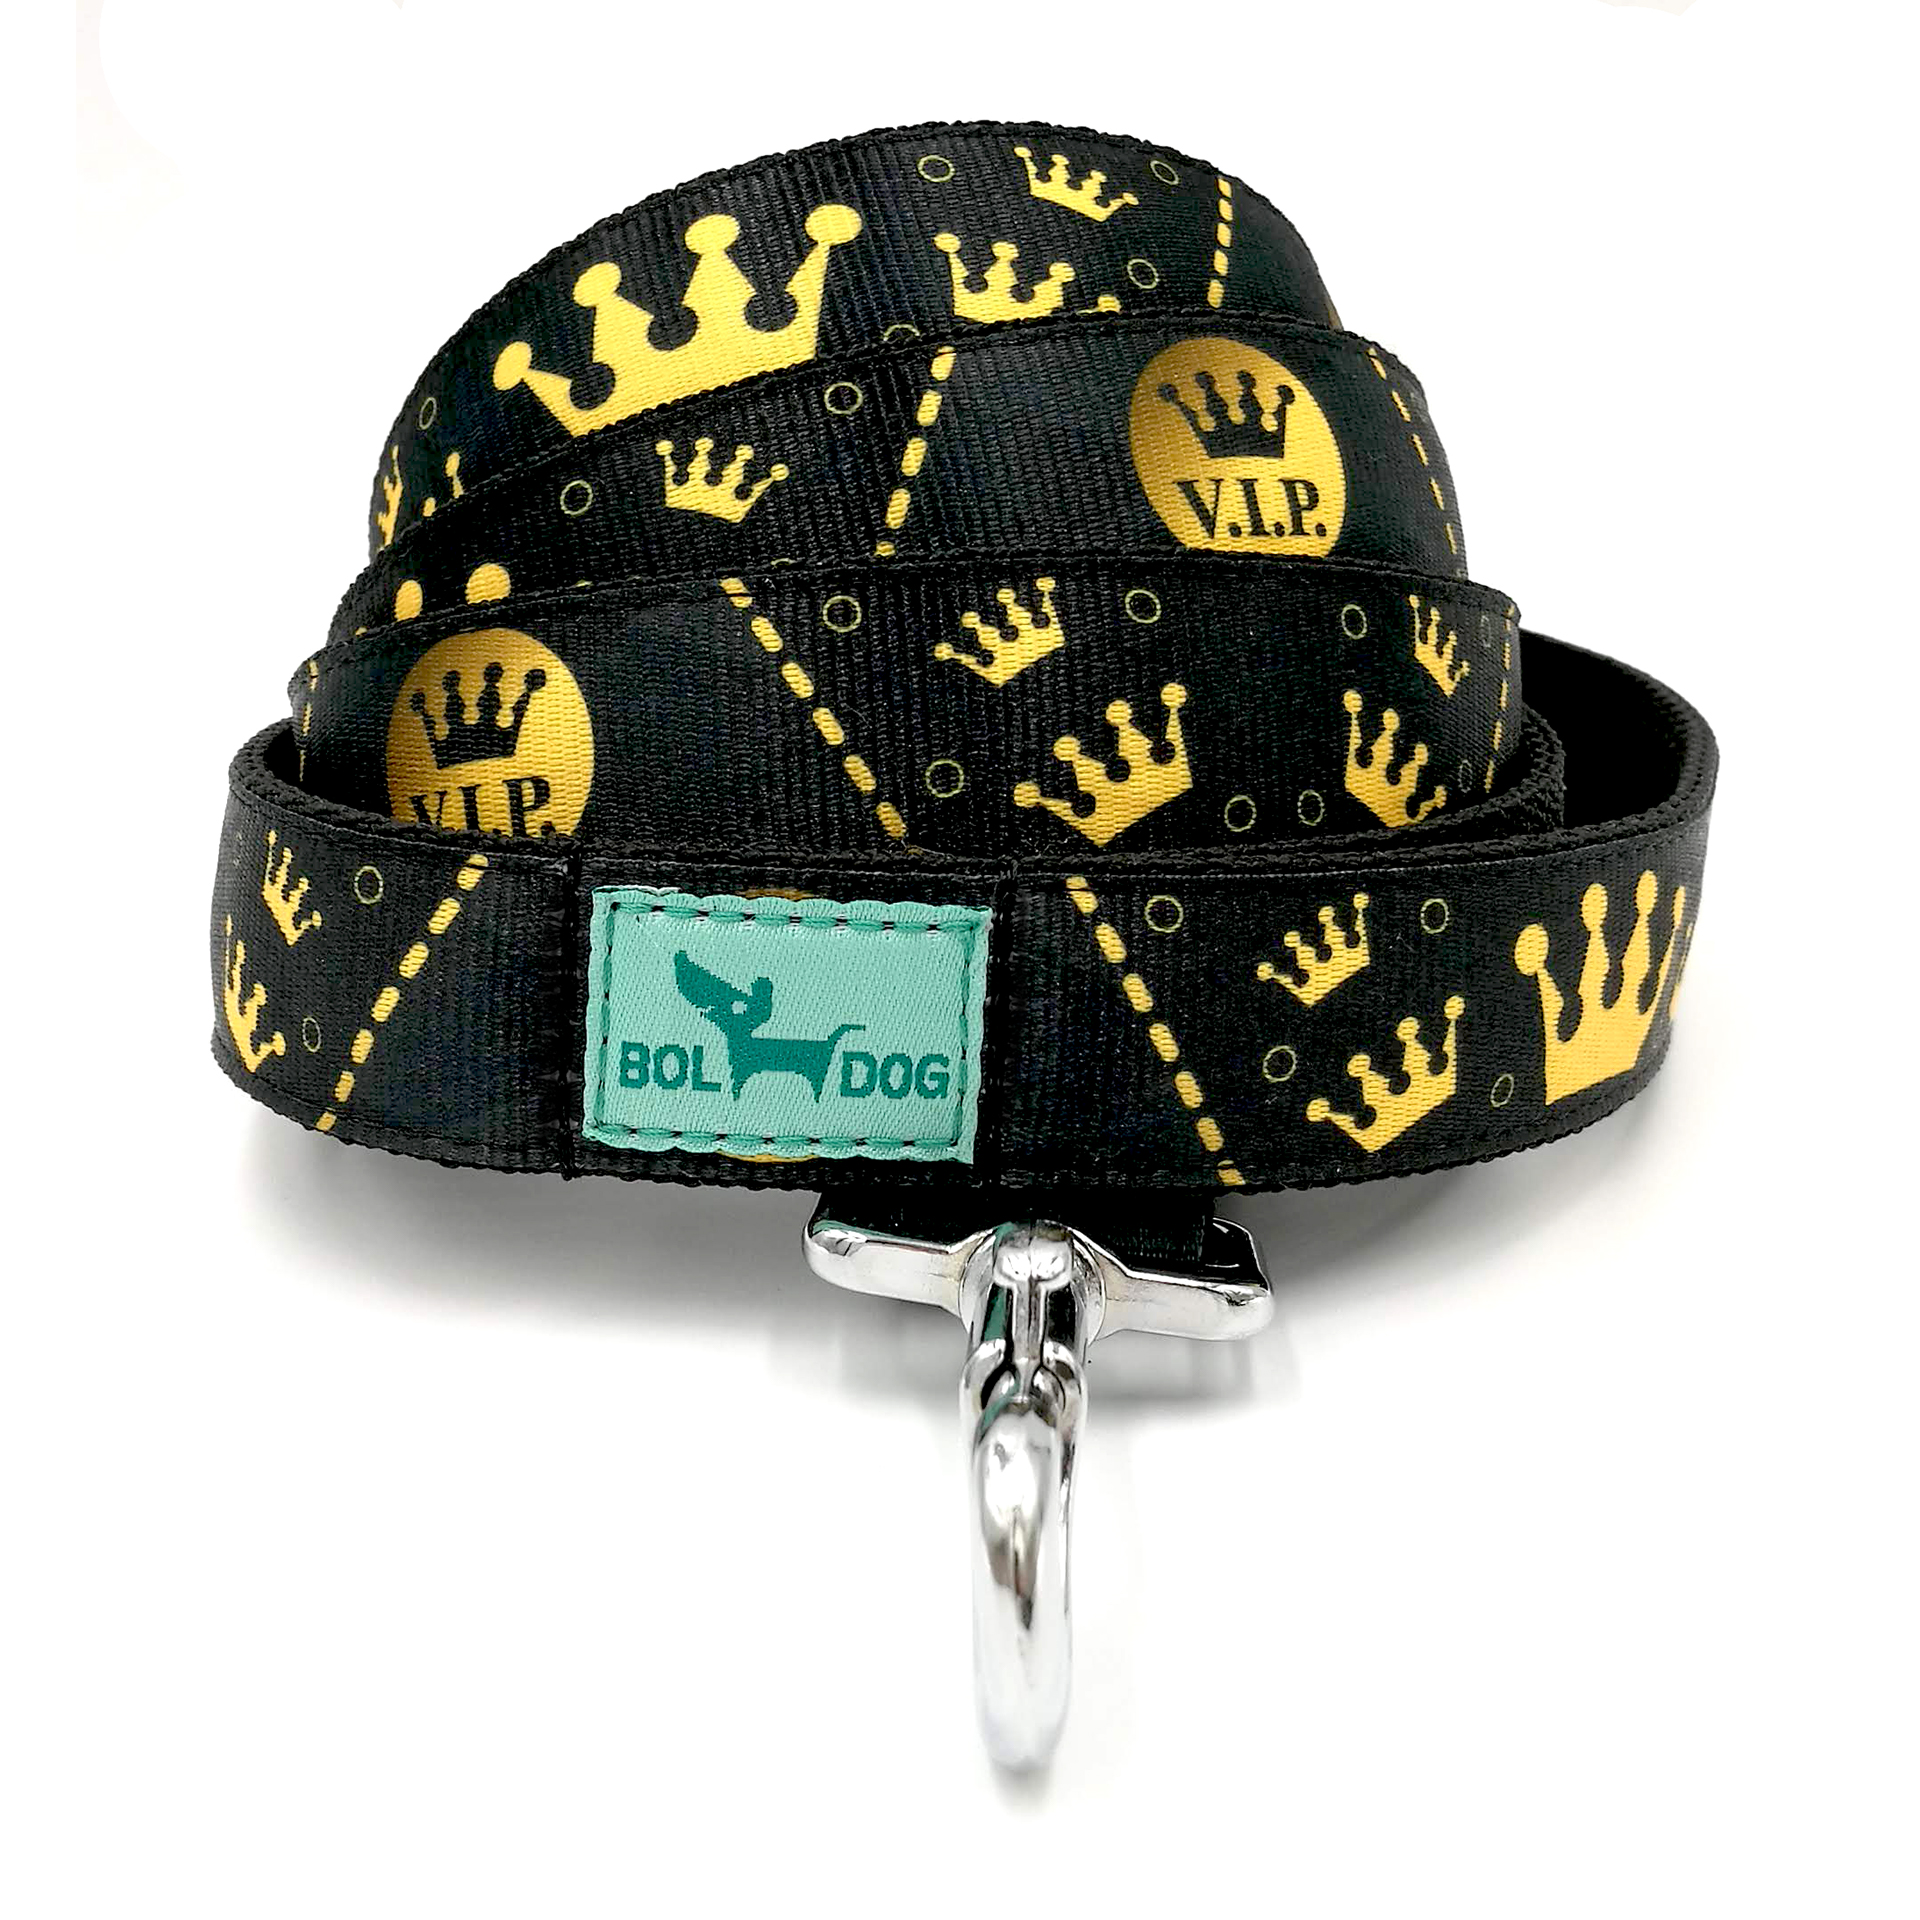 Vip dog leash